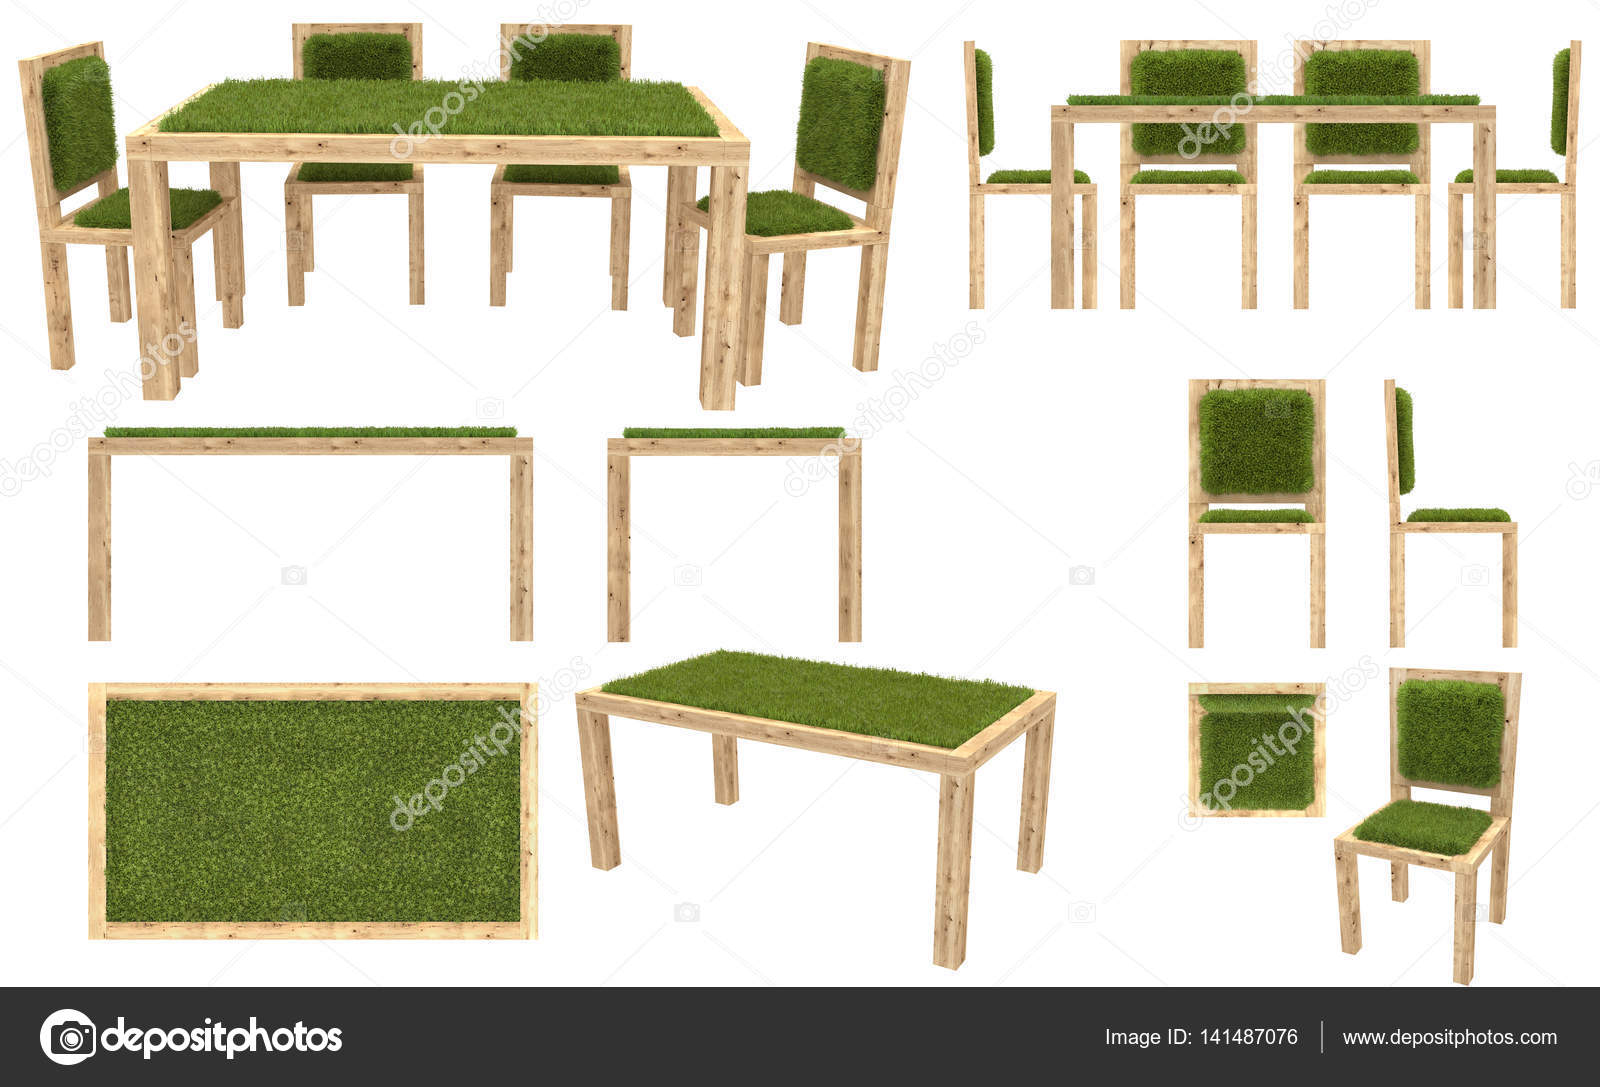 Wooden Table And Chairs With Grass Cover. Garden Furniture. Top View, Side  View, Front View. Isolated On White Background. 3D Visualization U2014 Photo By  Jud_g